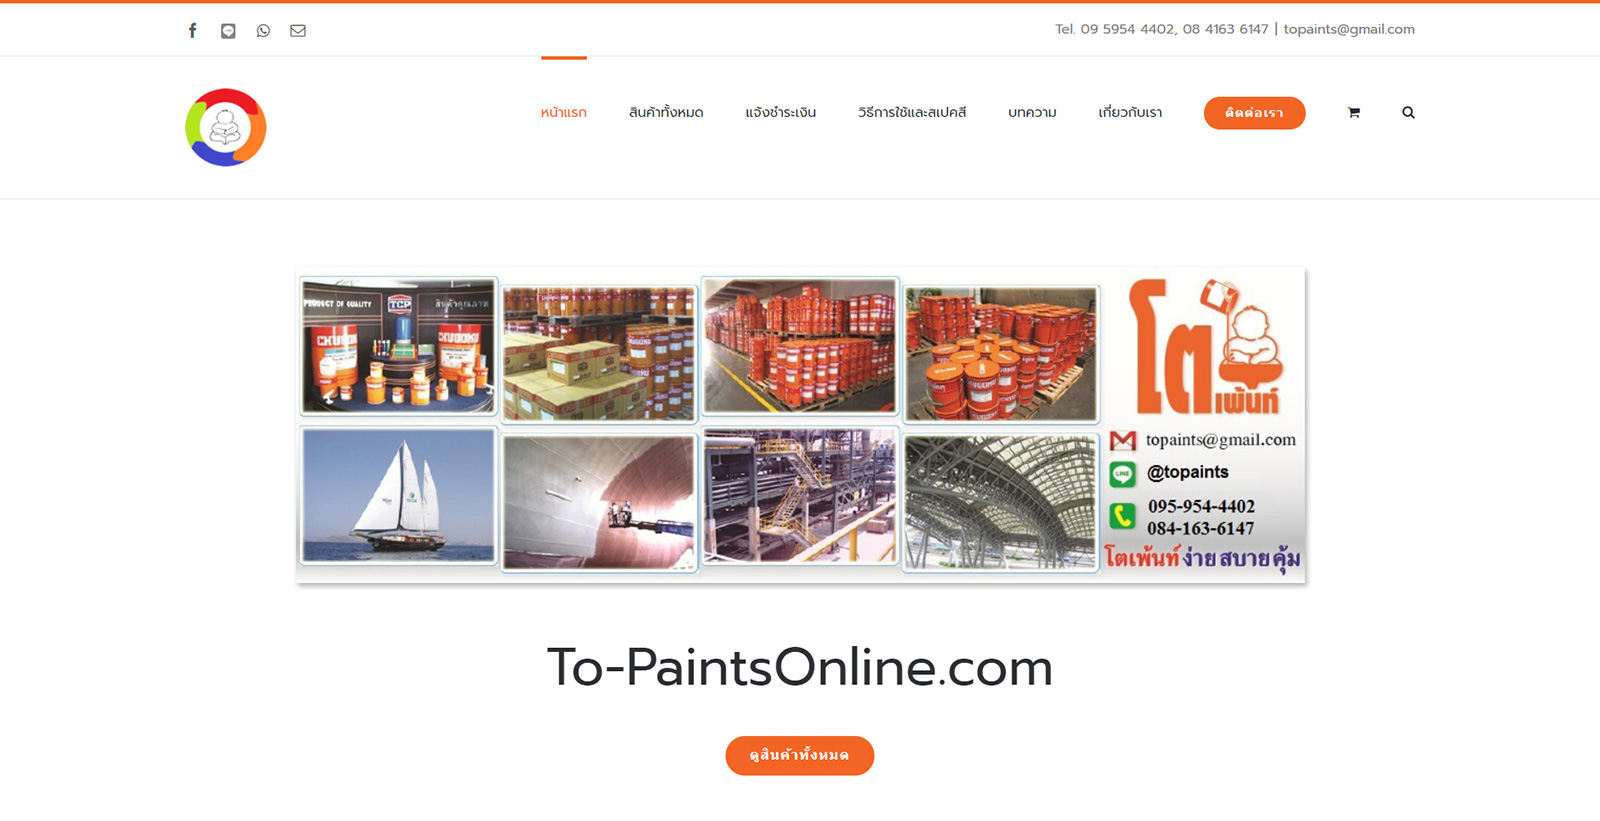 To-PaintsOnline